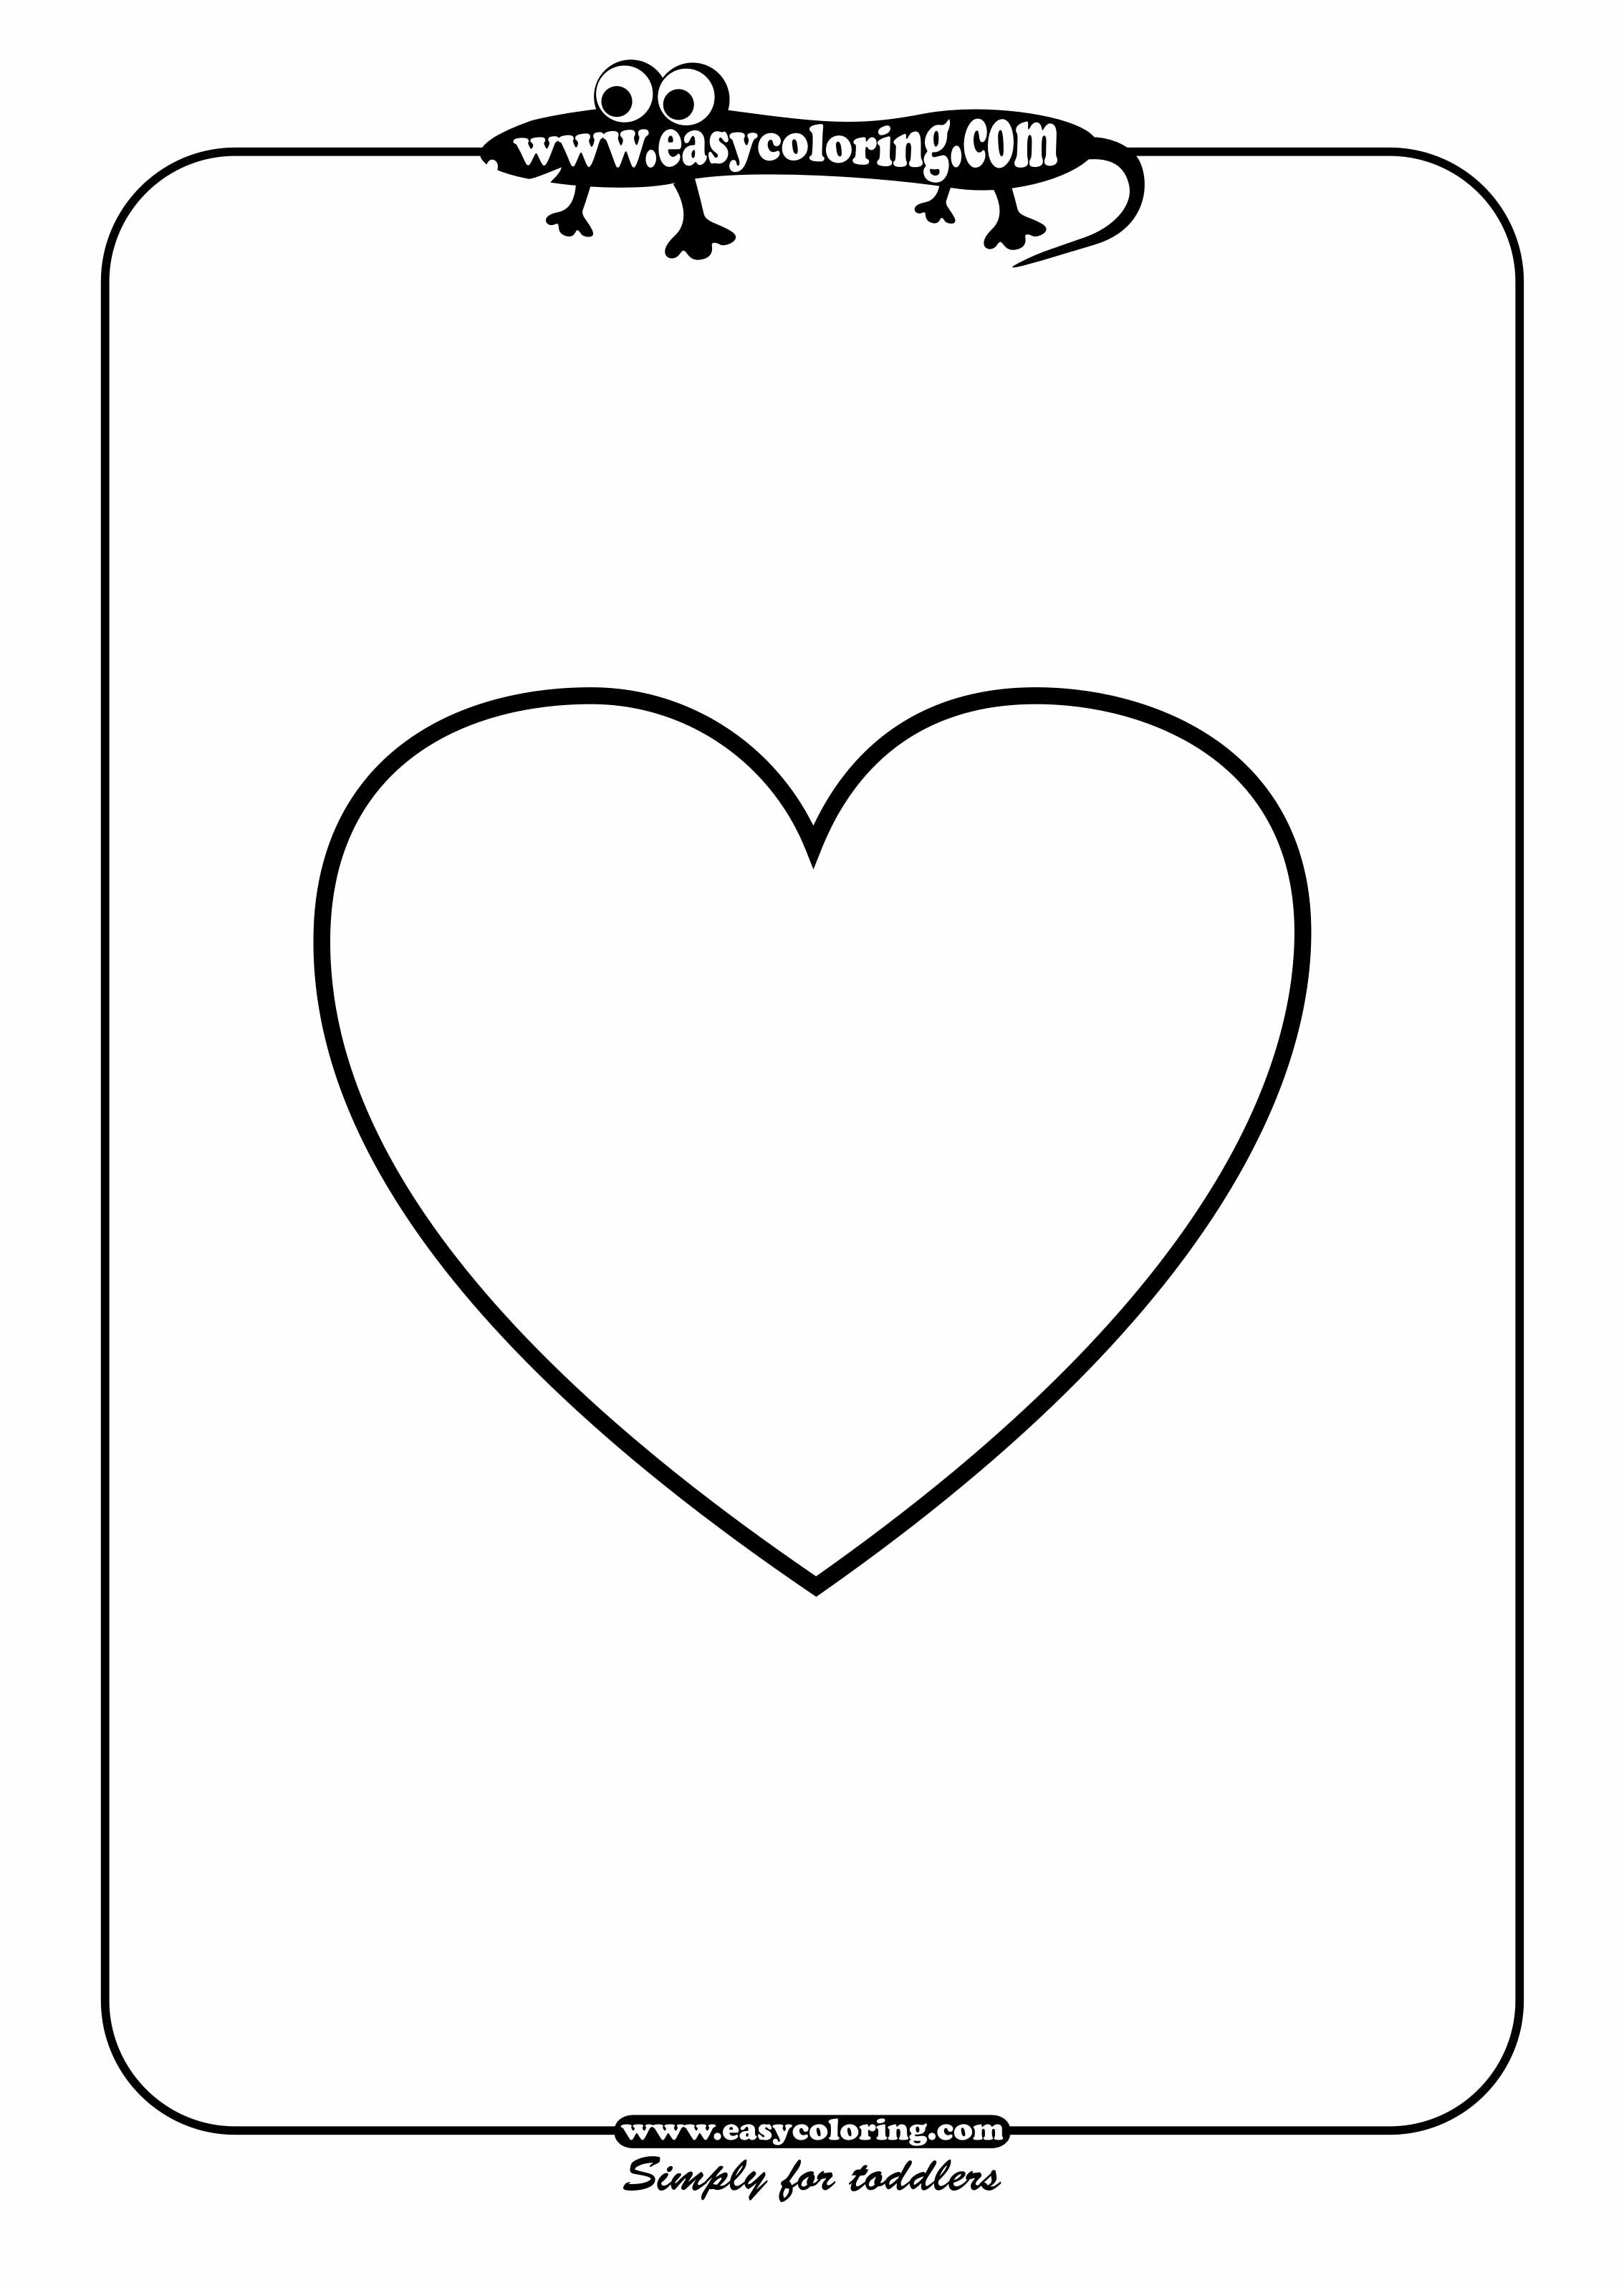 Heart Worksheet For Toddlers